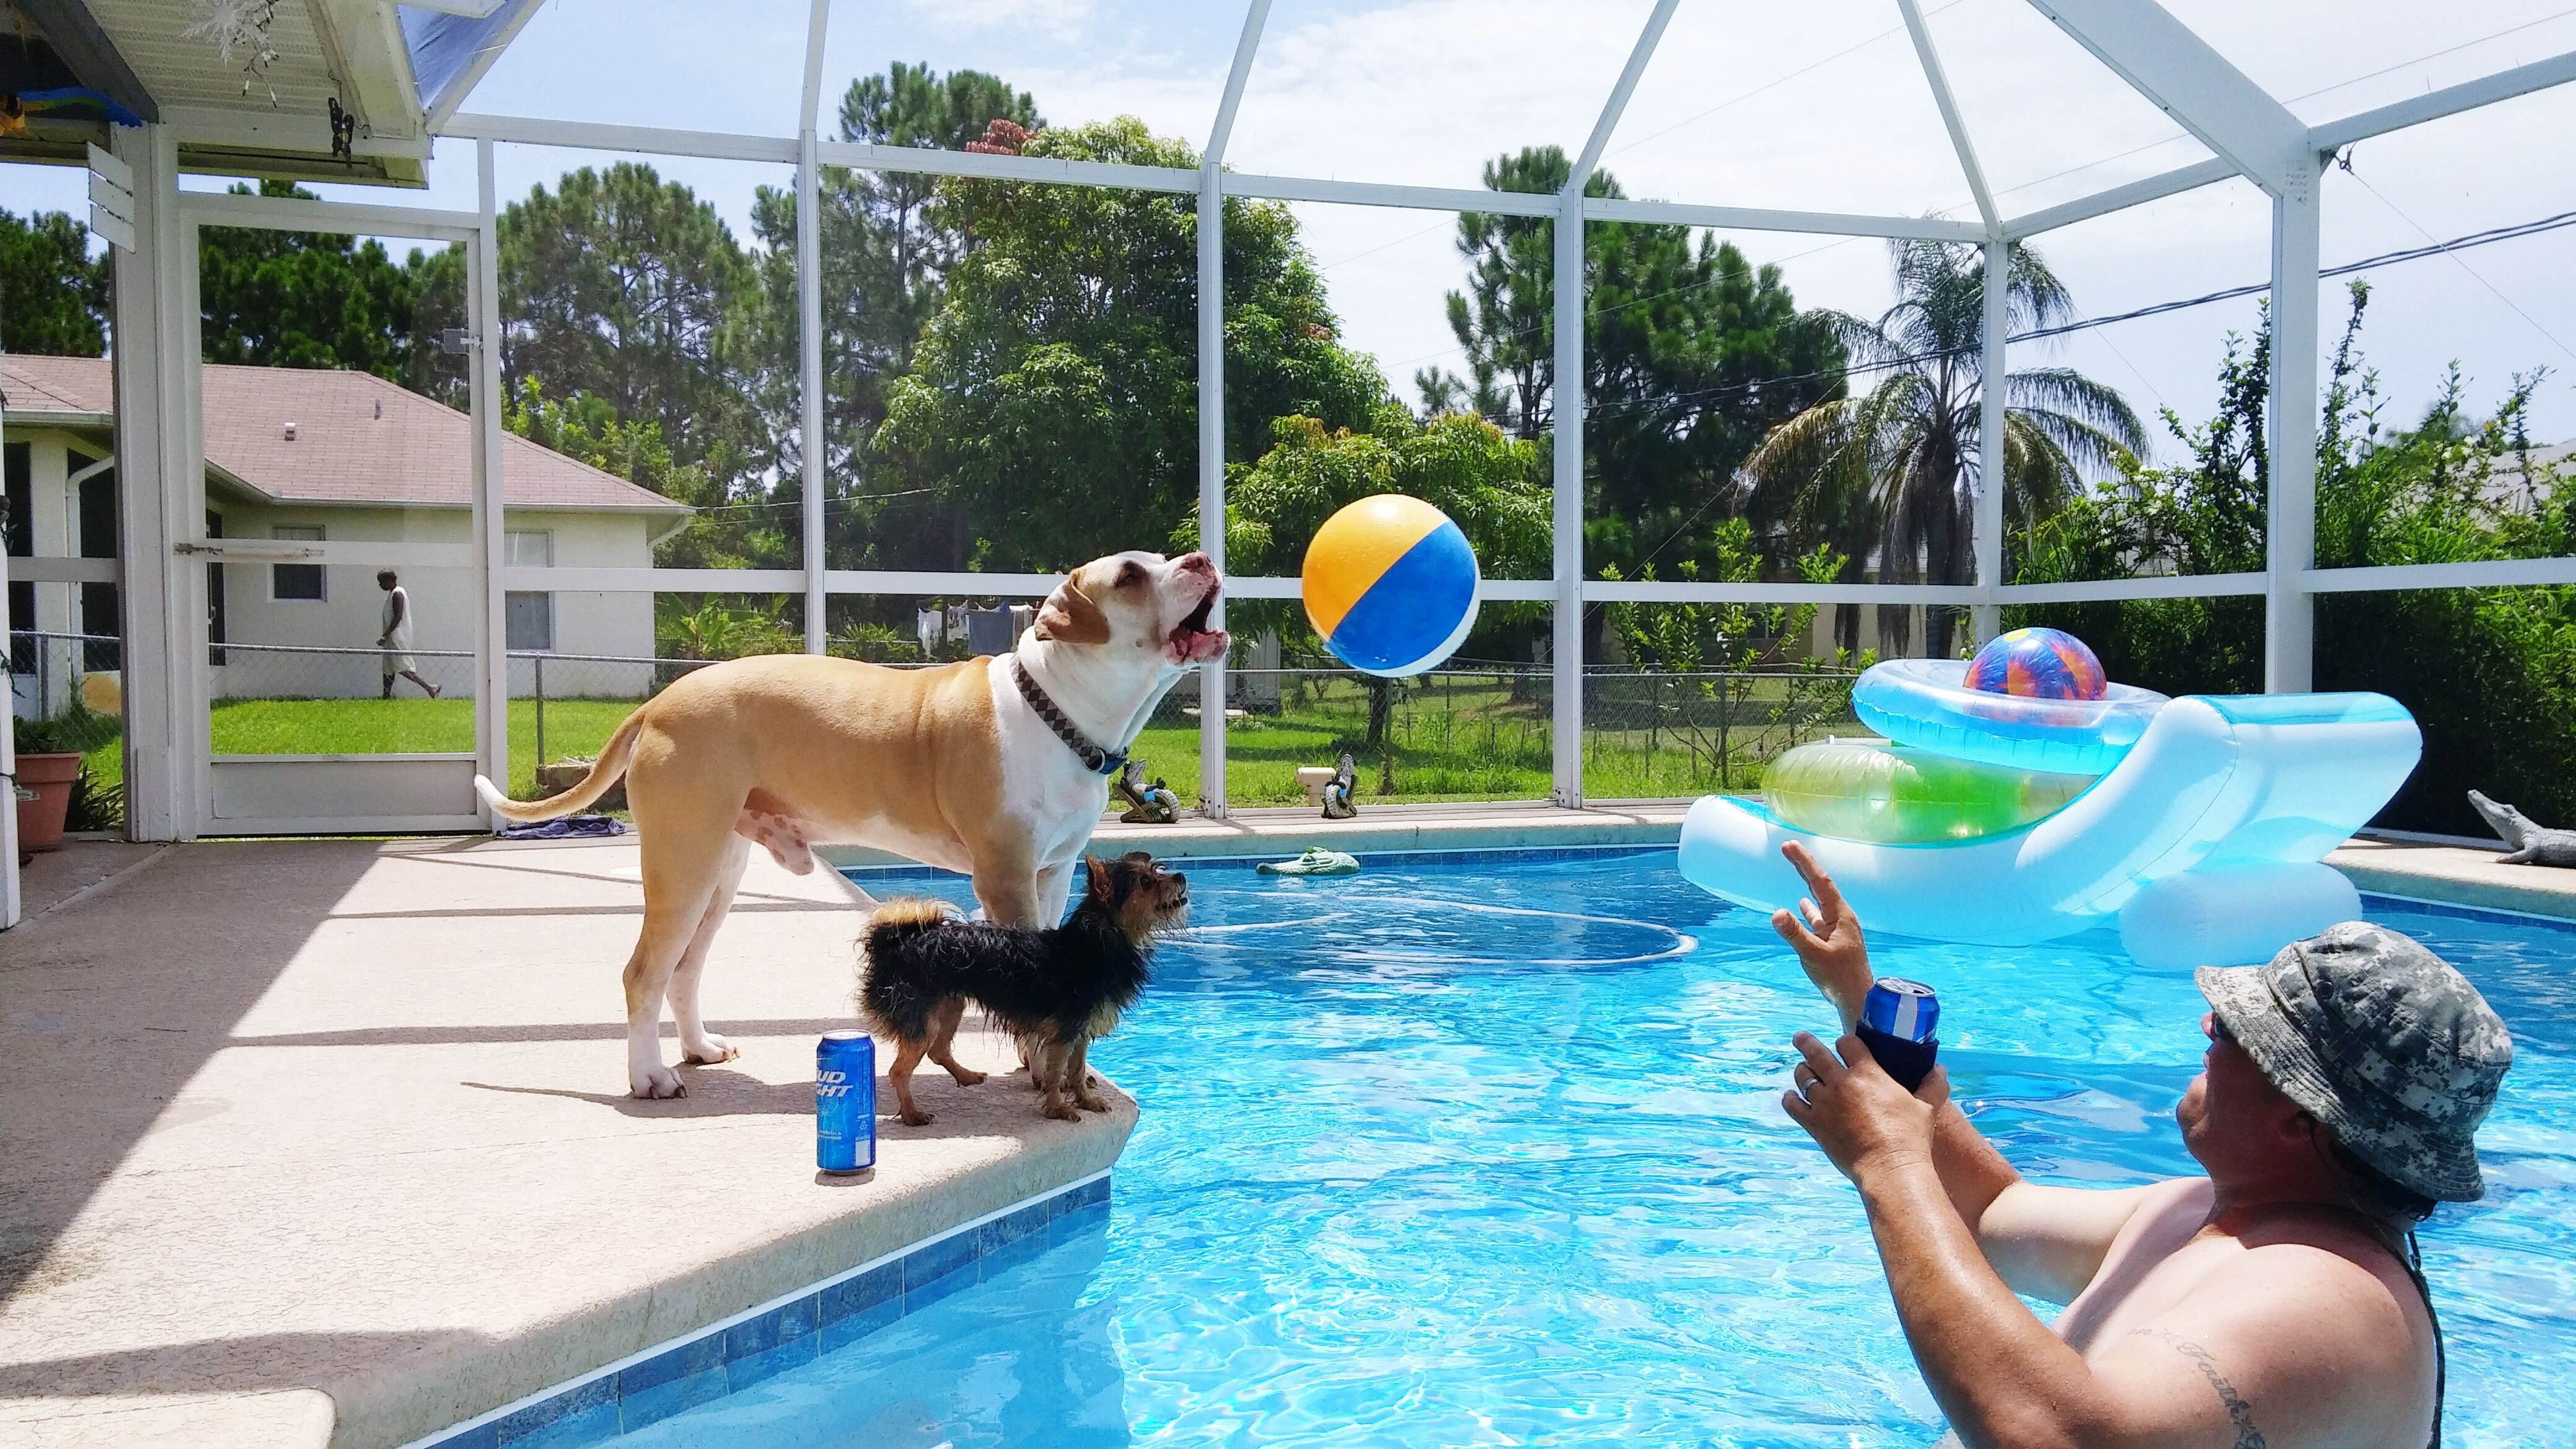 water, lifestyles, domestic animals, pets, leisure activity, holding, swimming pool, dog, person, mammal, blue, animal themes, one animal, men, sitting